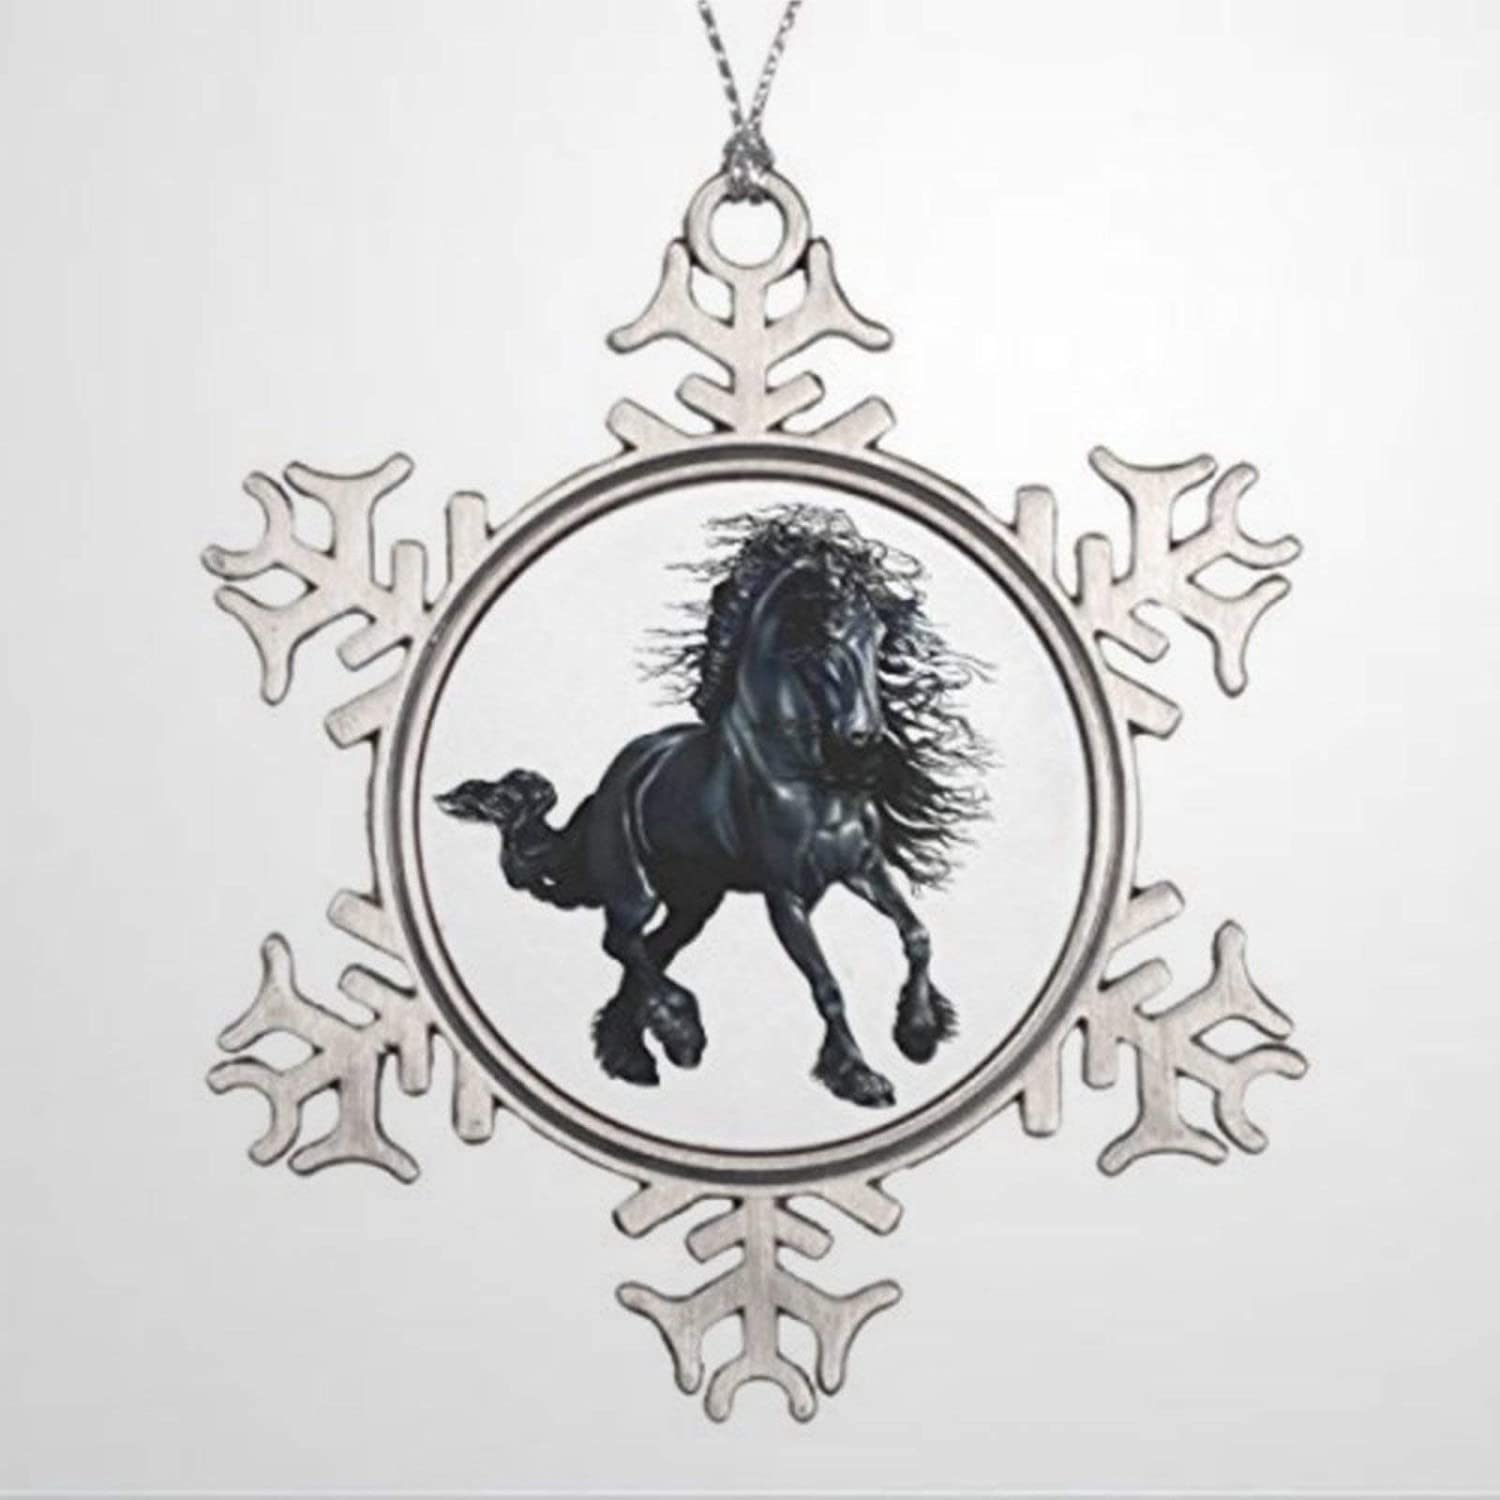 DONL9BAUER Christmas Ornament Friesian Stallion Horse, The Black Beauty Holiday Tags Metal Snowflake Pendant Xmas Decor for Anniversary Christmas Tree Hanging